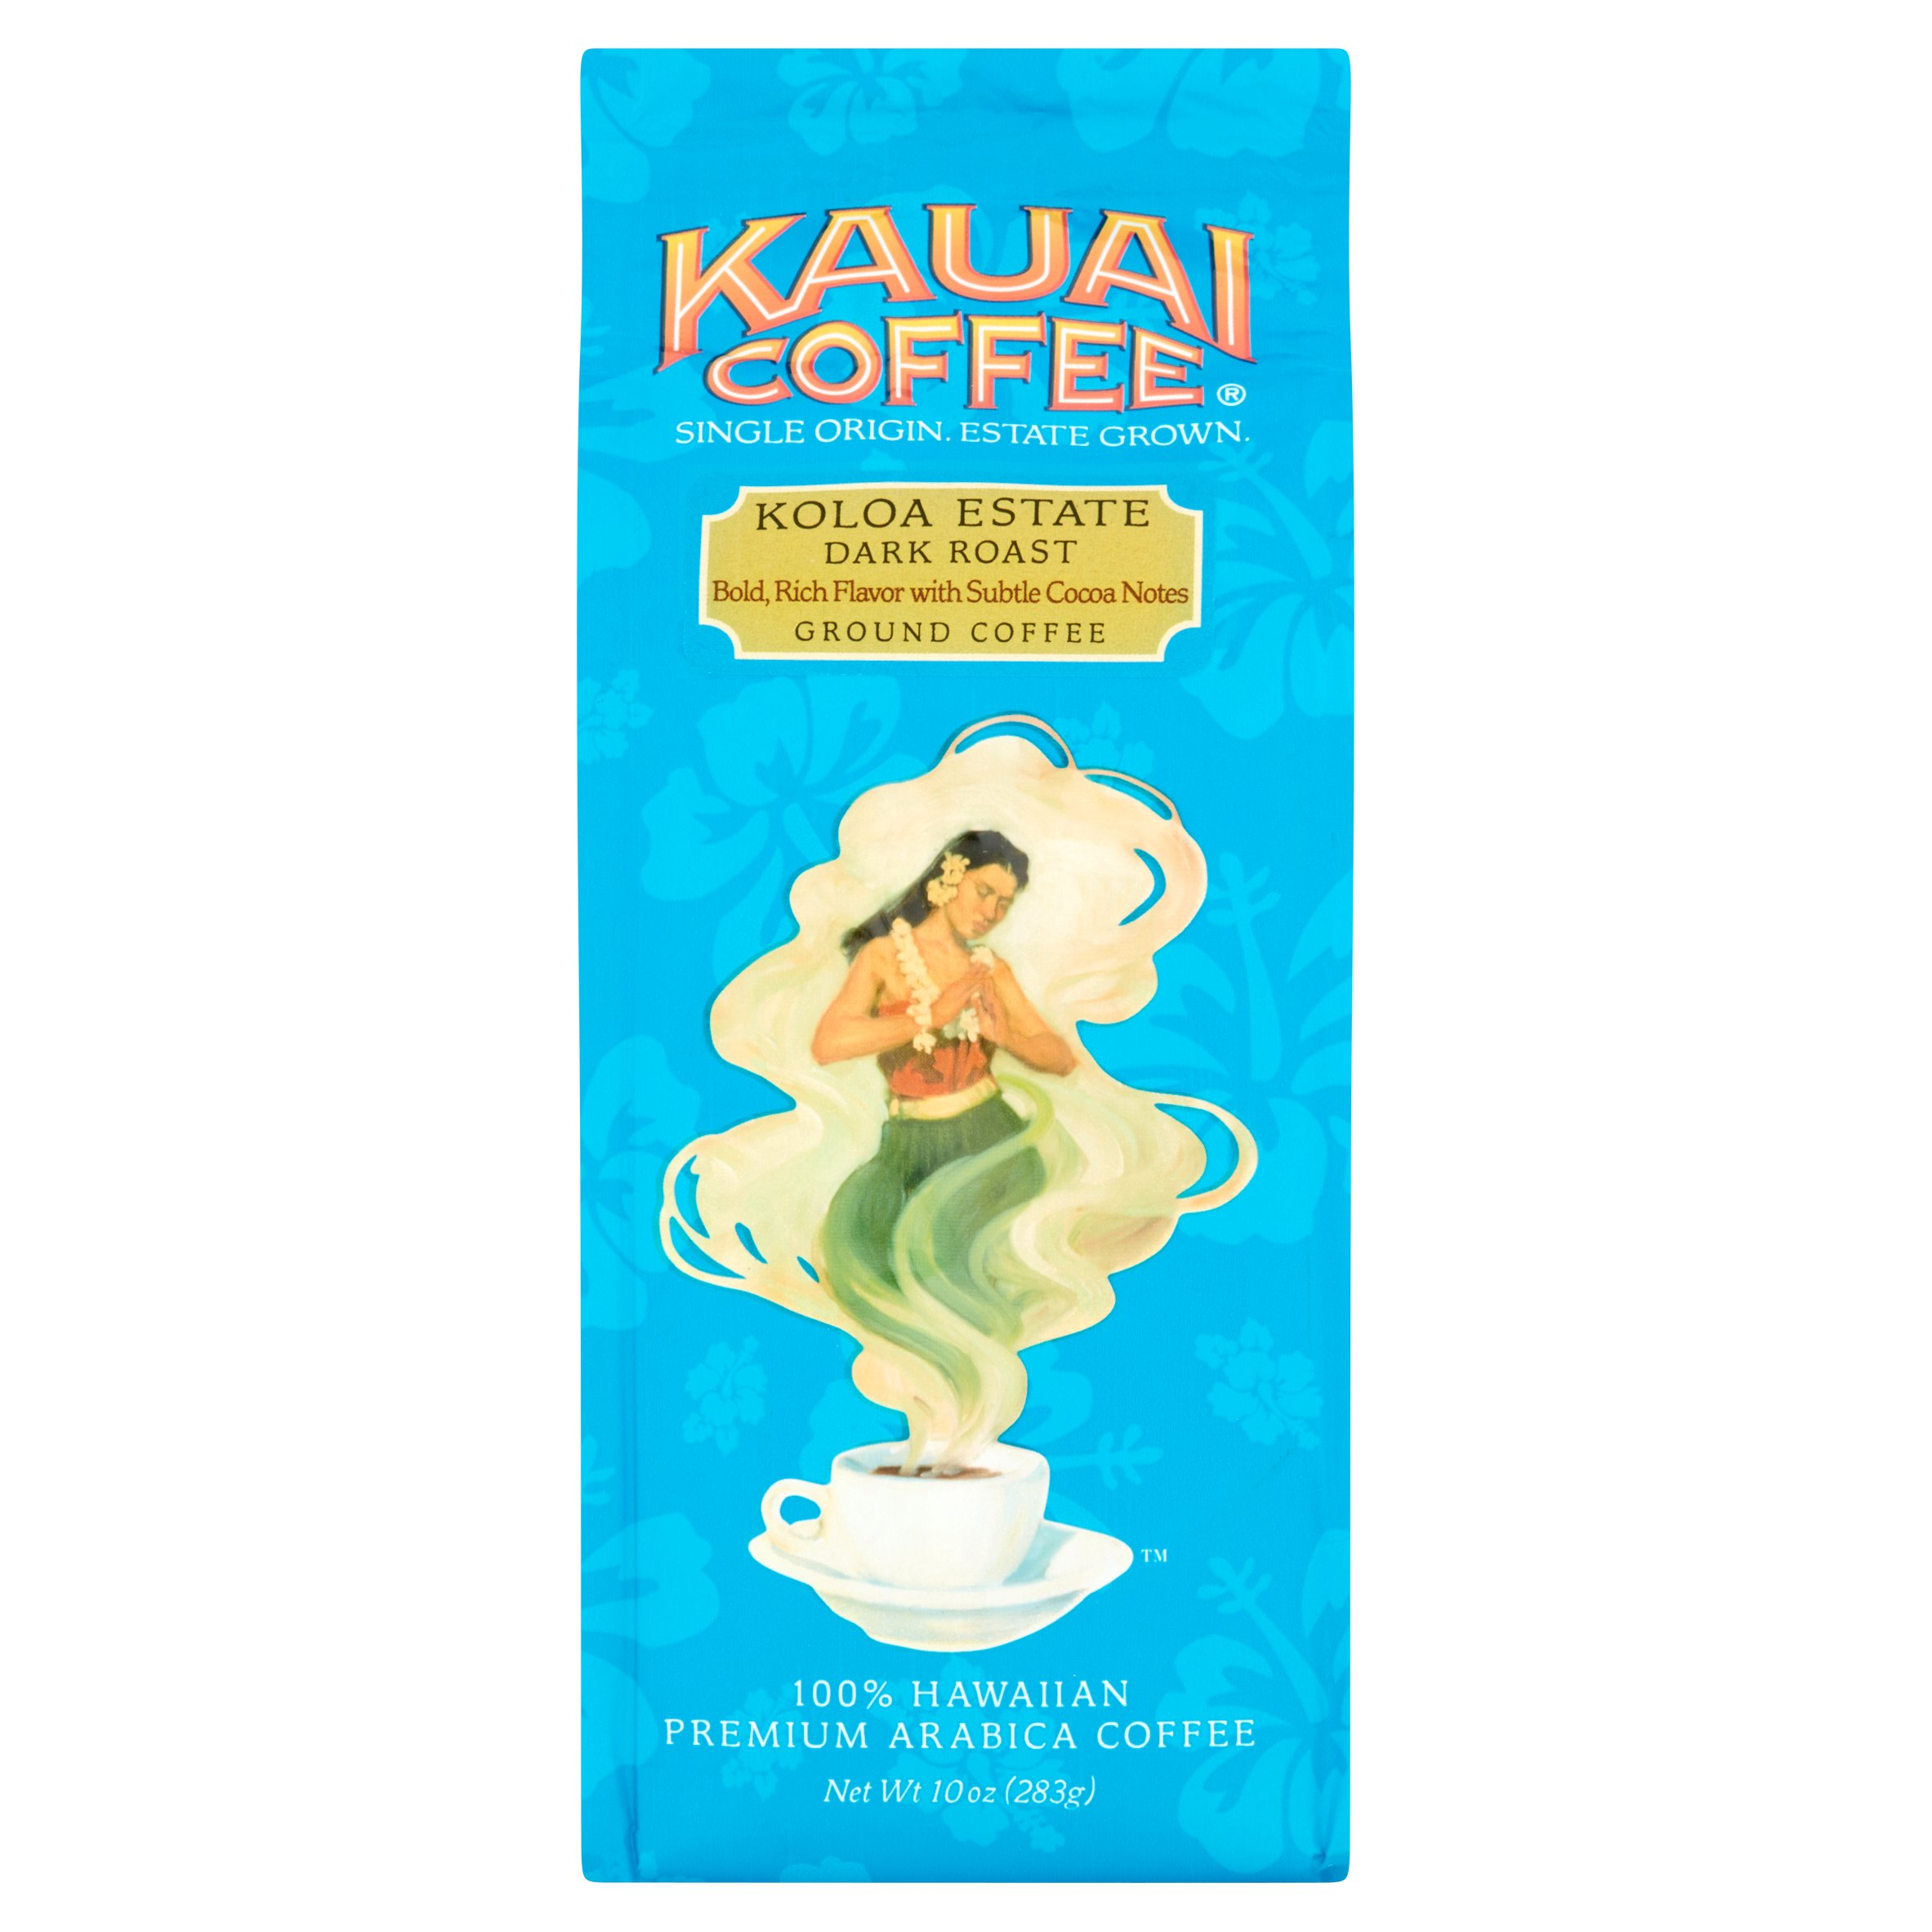 Kauai Coffee Koloa Estate Dark Roast Hawaiian Ground Coffee 10.0 oz Bag